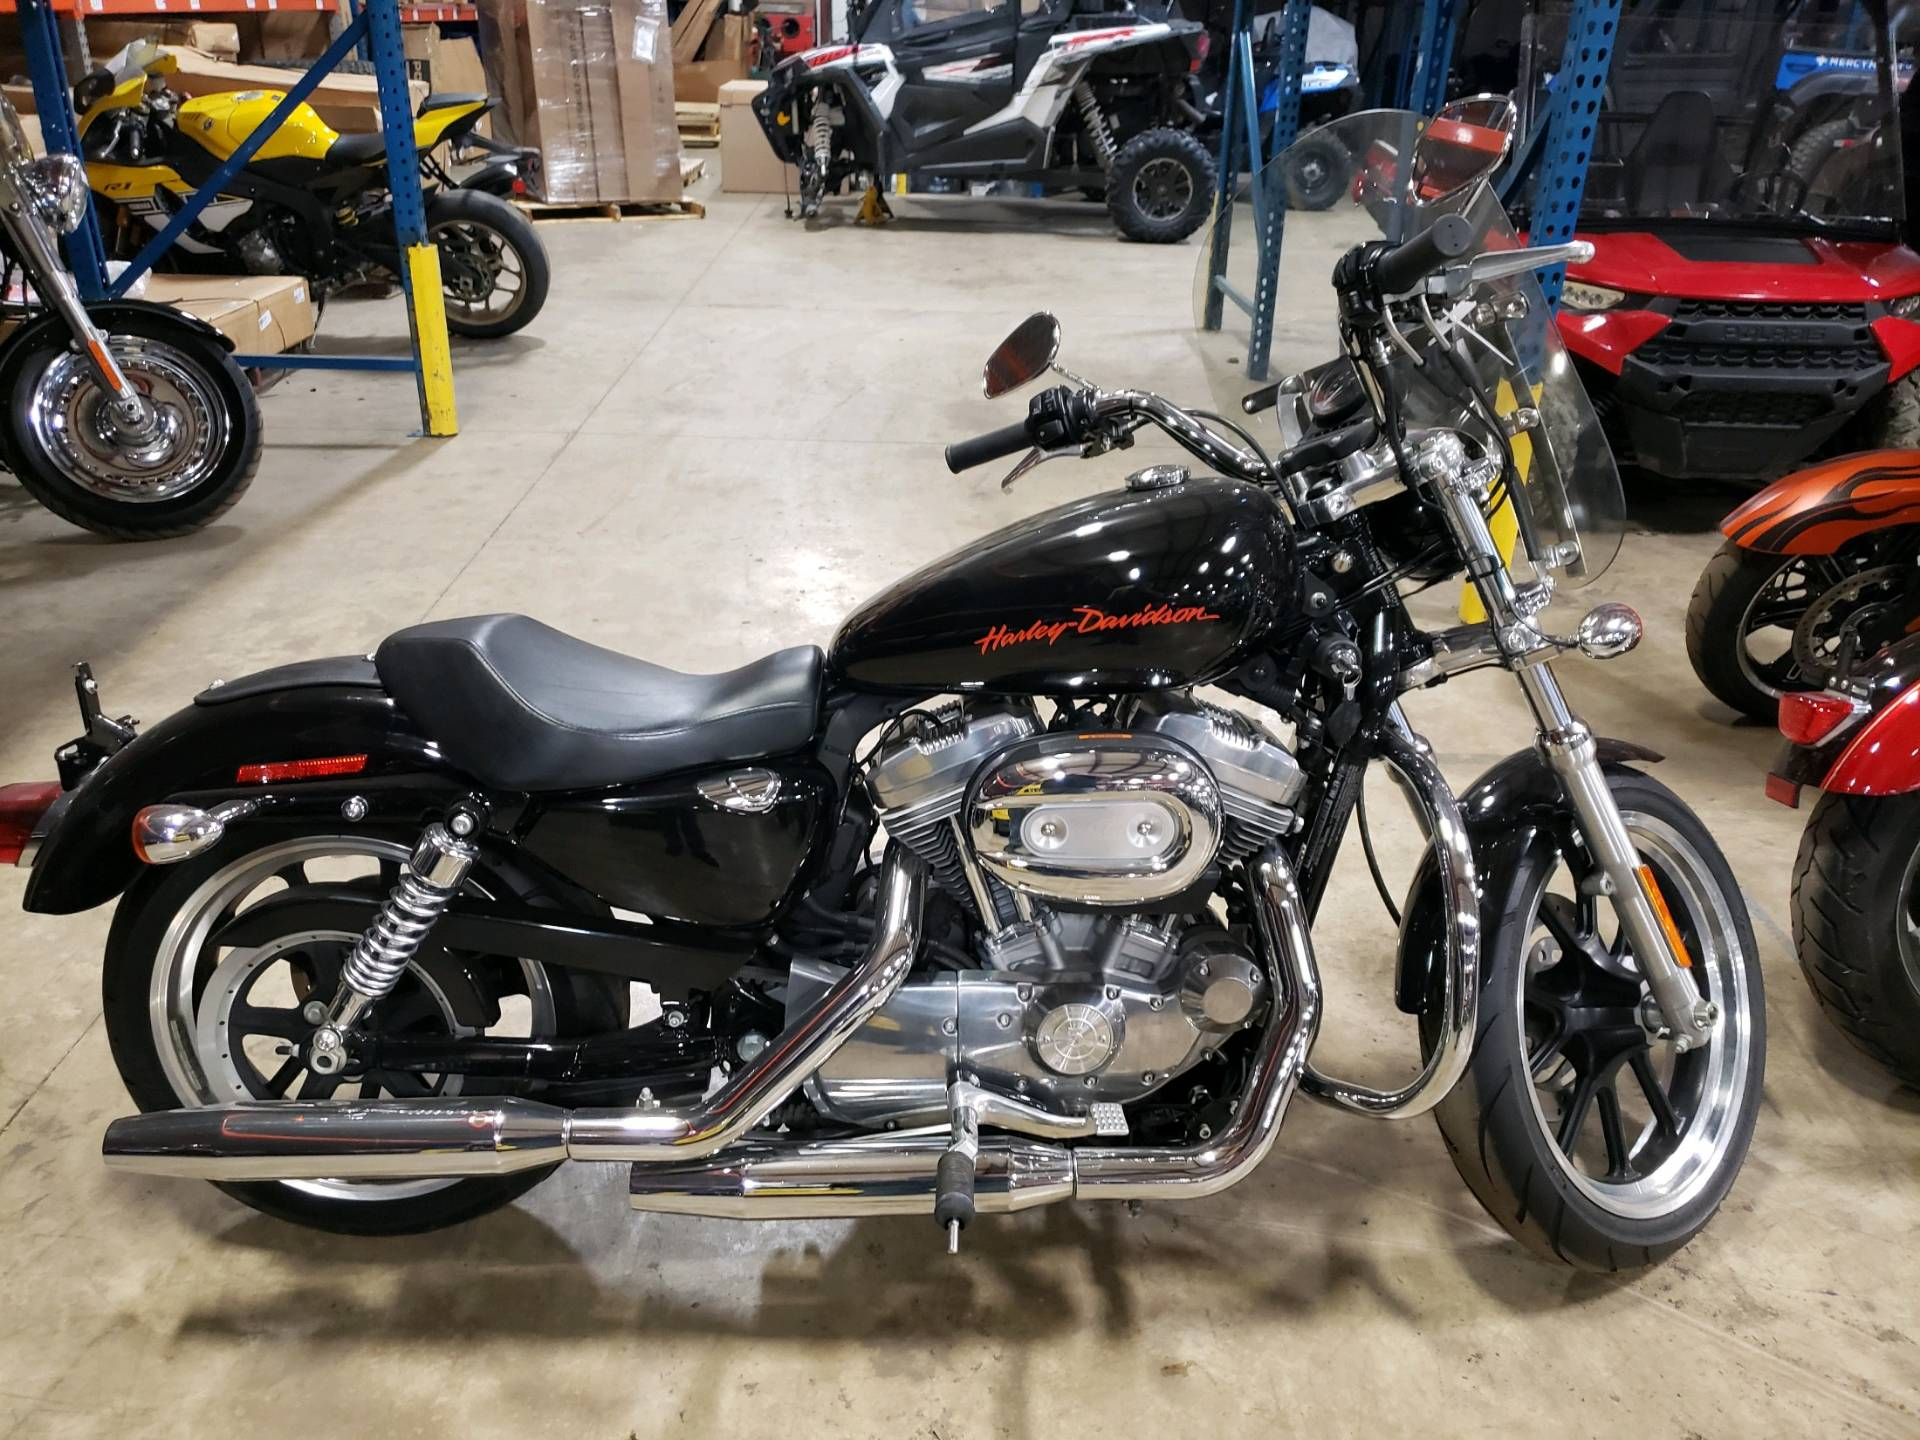 Harley Davidson Michigan >> 2012 Harley Davidson Sportster 883 Superlow In Monroe Michigan